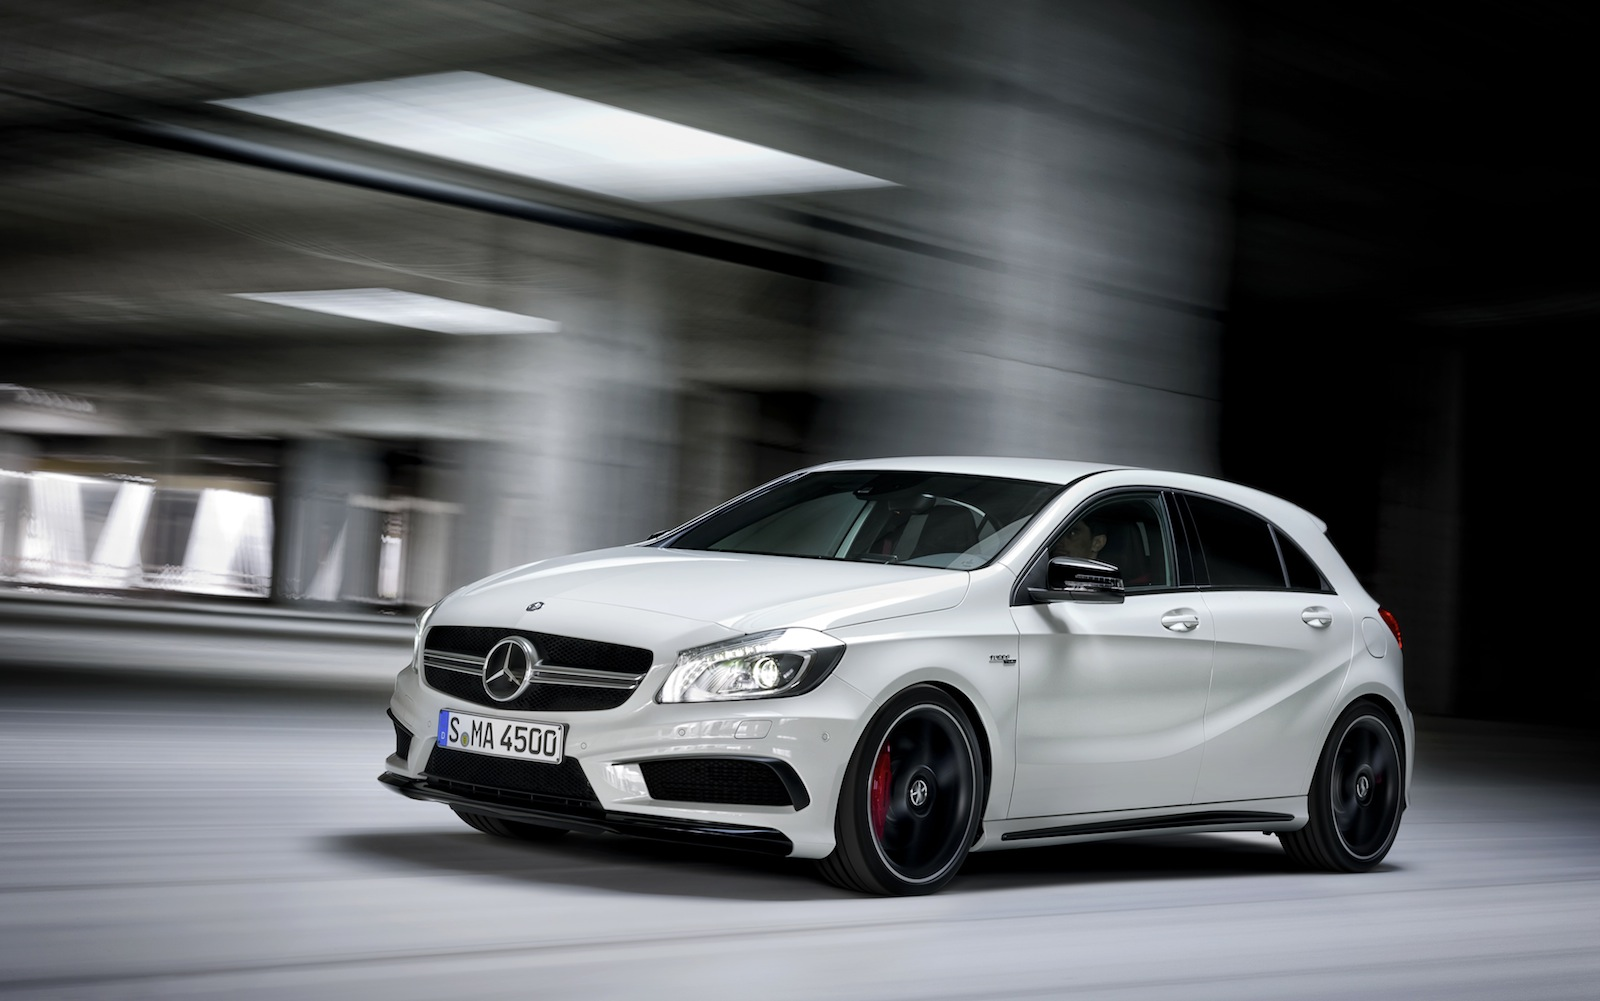 mercedes benz a45 amg 265kw hot hatch unleashed photos 1 of 16. Black Bedroom Furniture Sets. Home Design Ideas